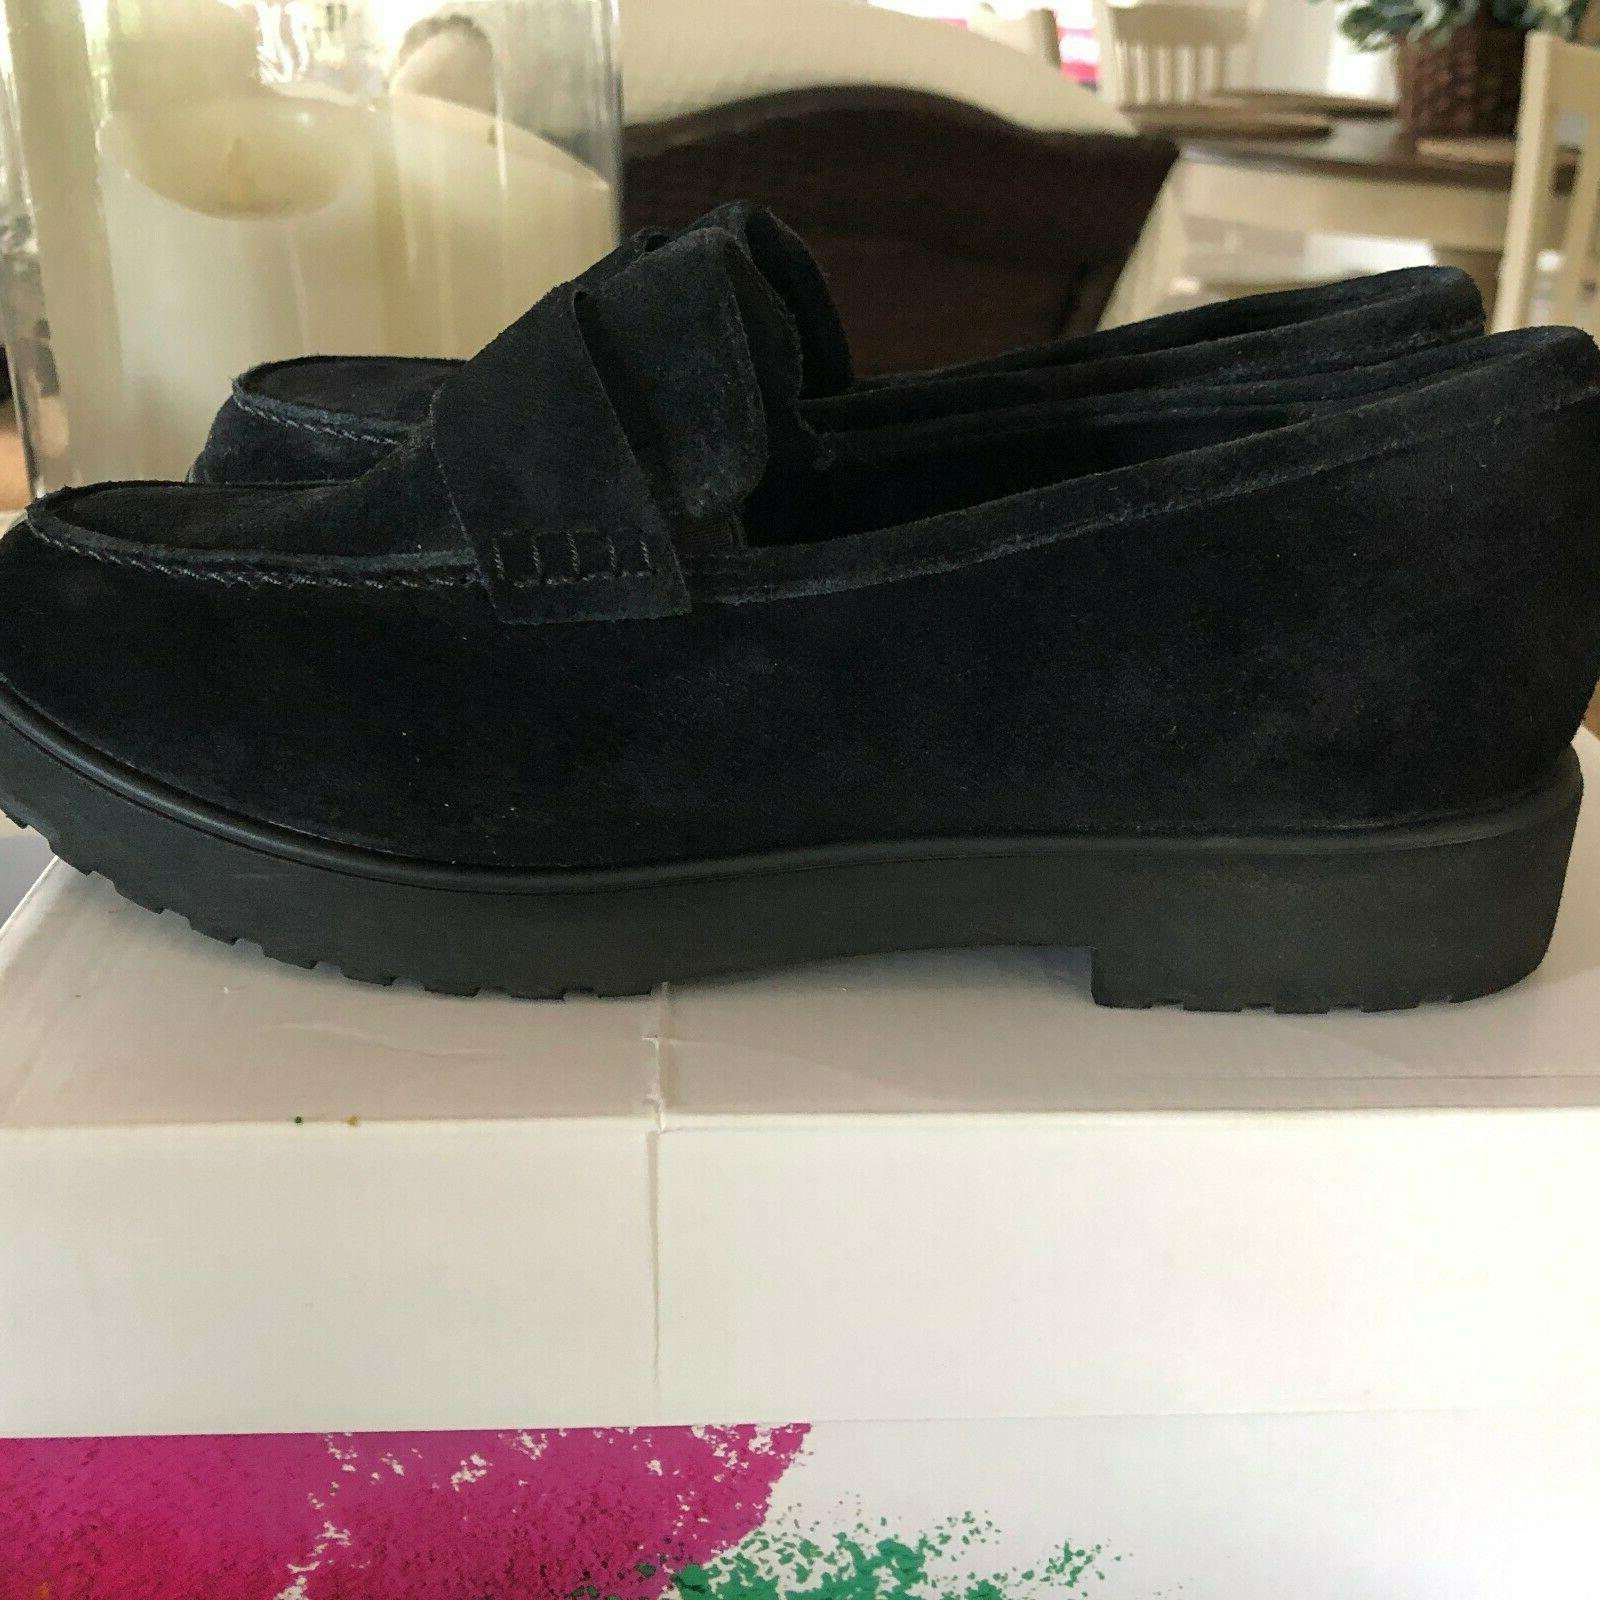 Clarks Cleated Loafers Bellevue 7W